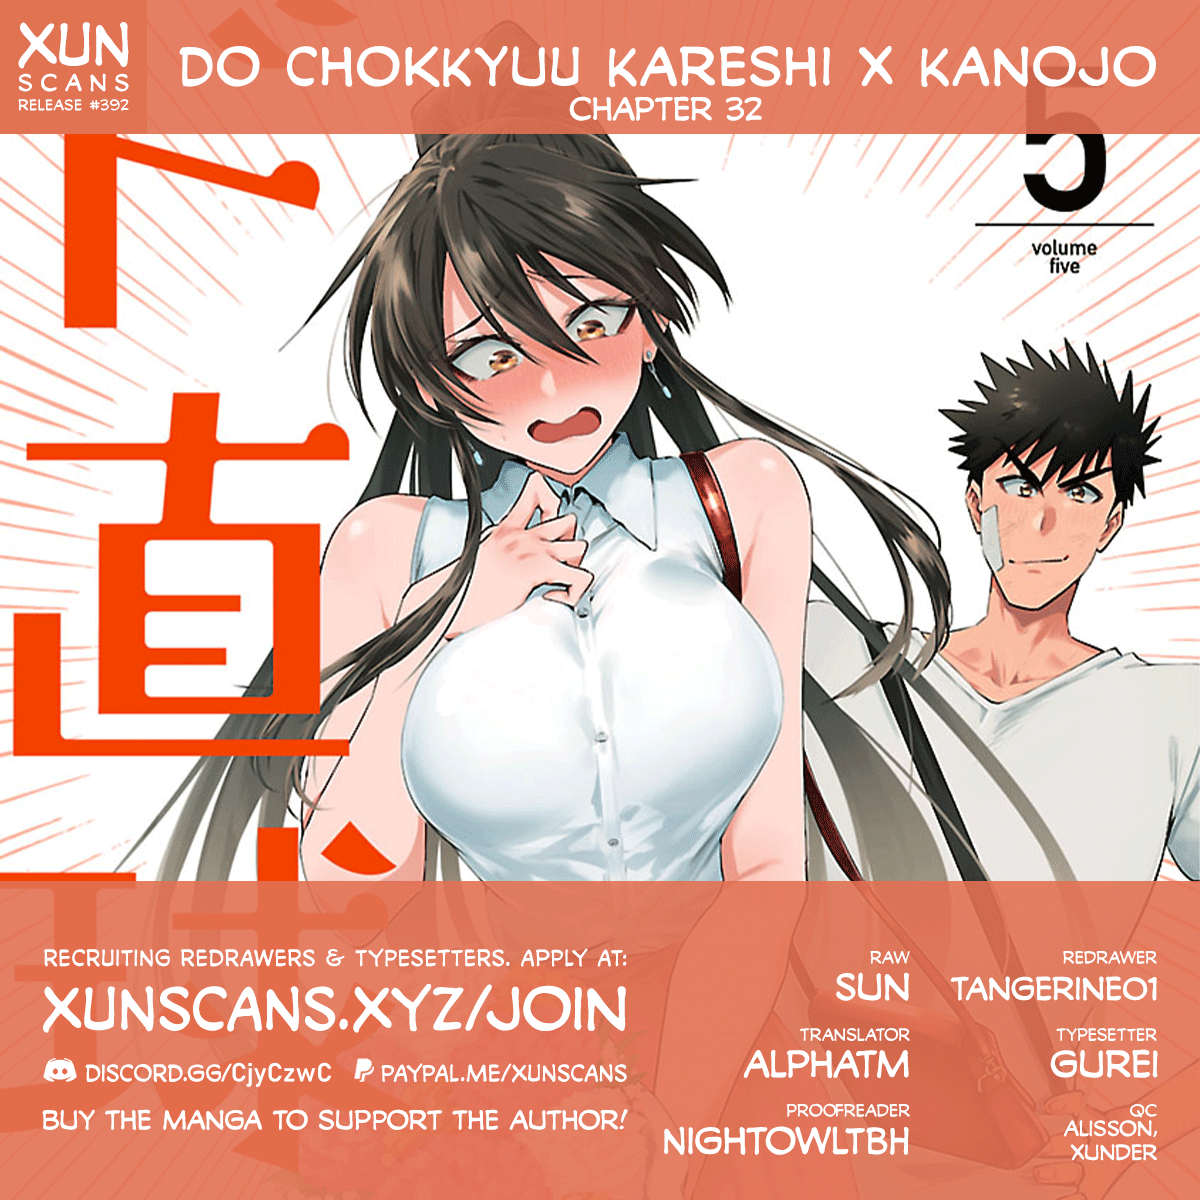 Manga Do Chokkyuu Kareshi x Kanojo - Chapter 32 Page 1